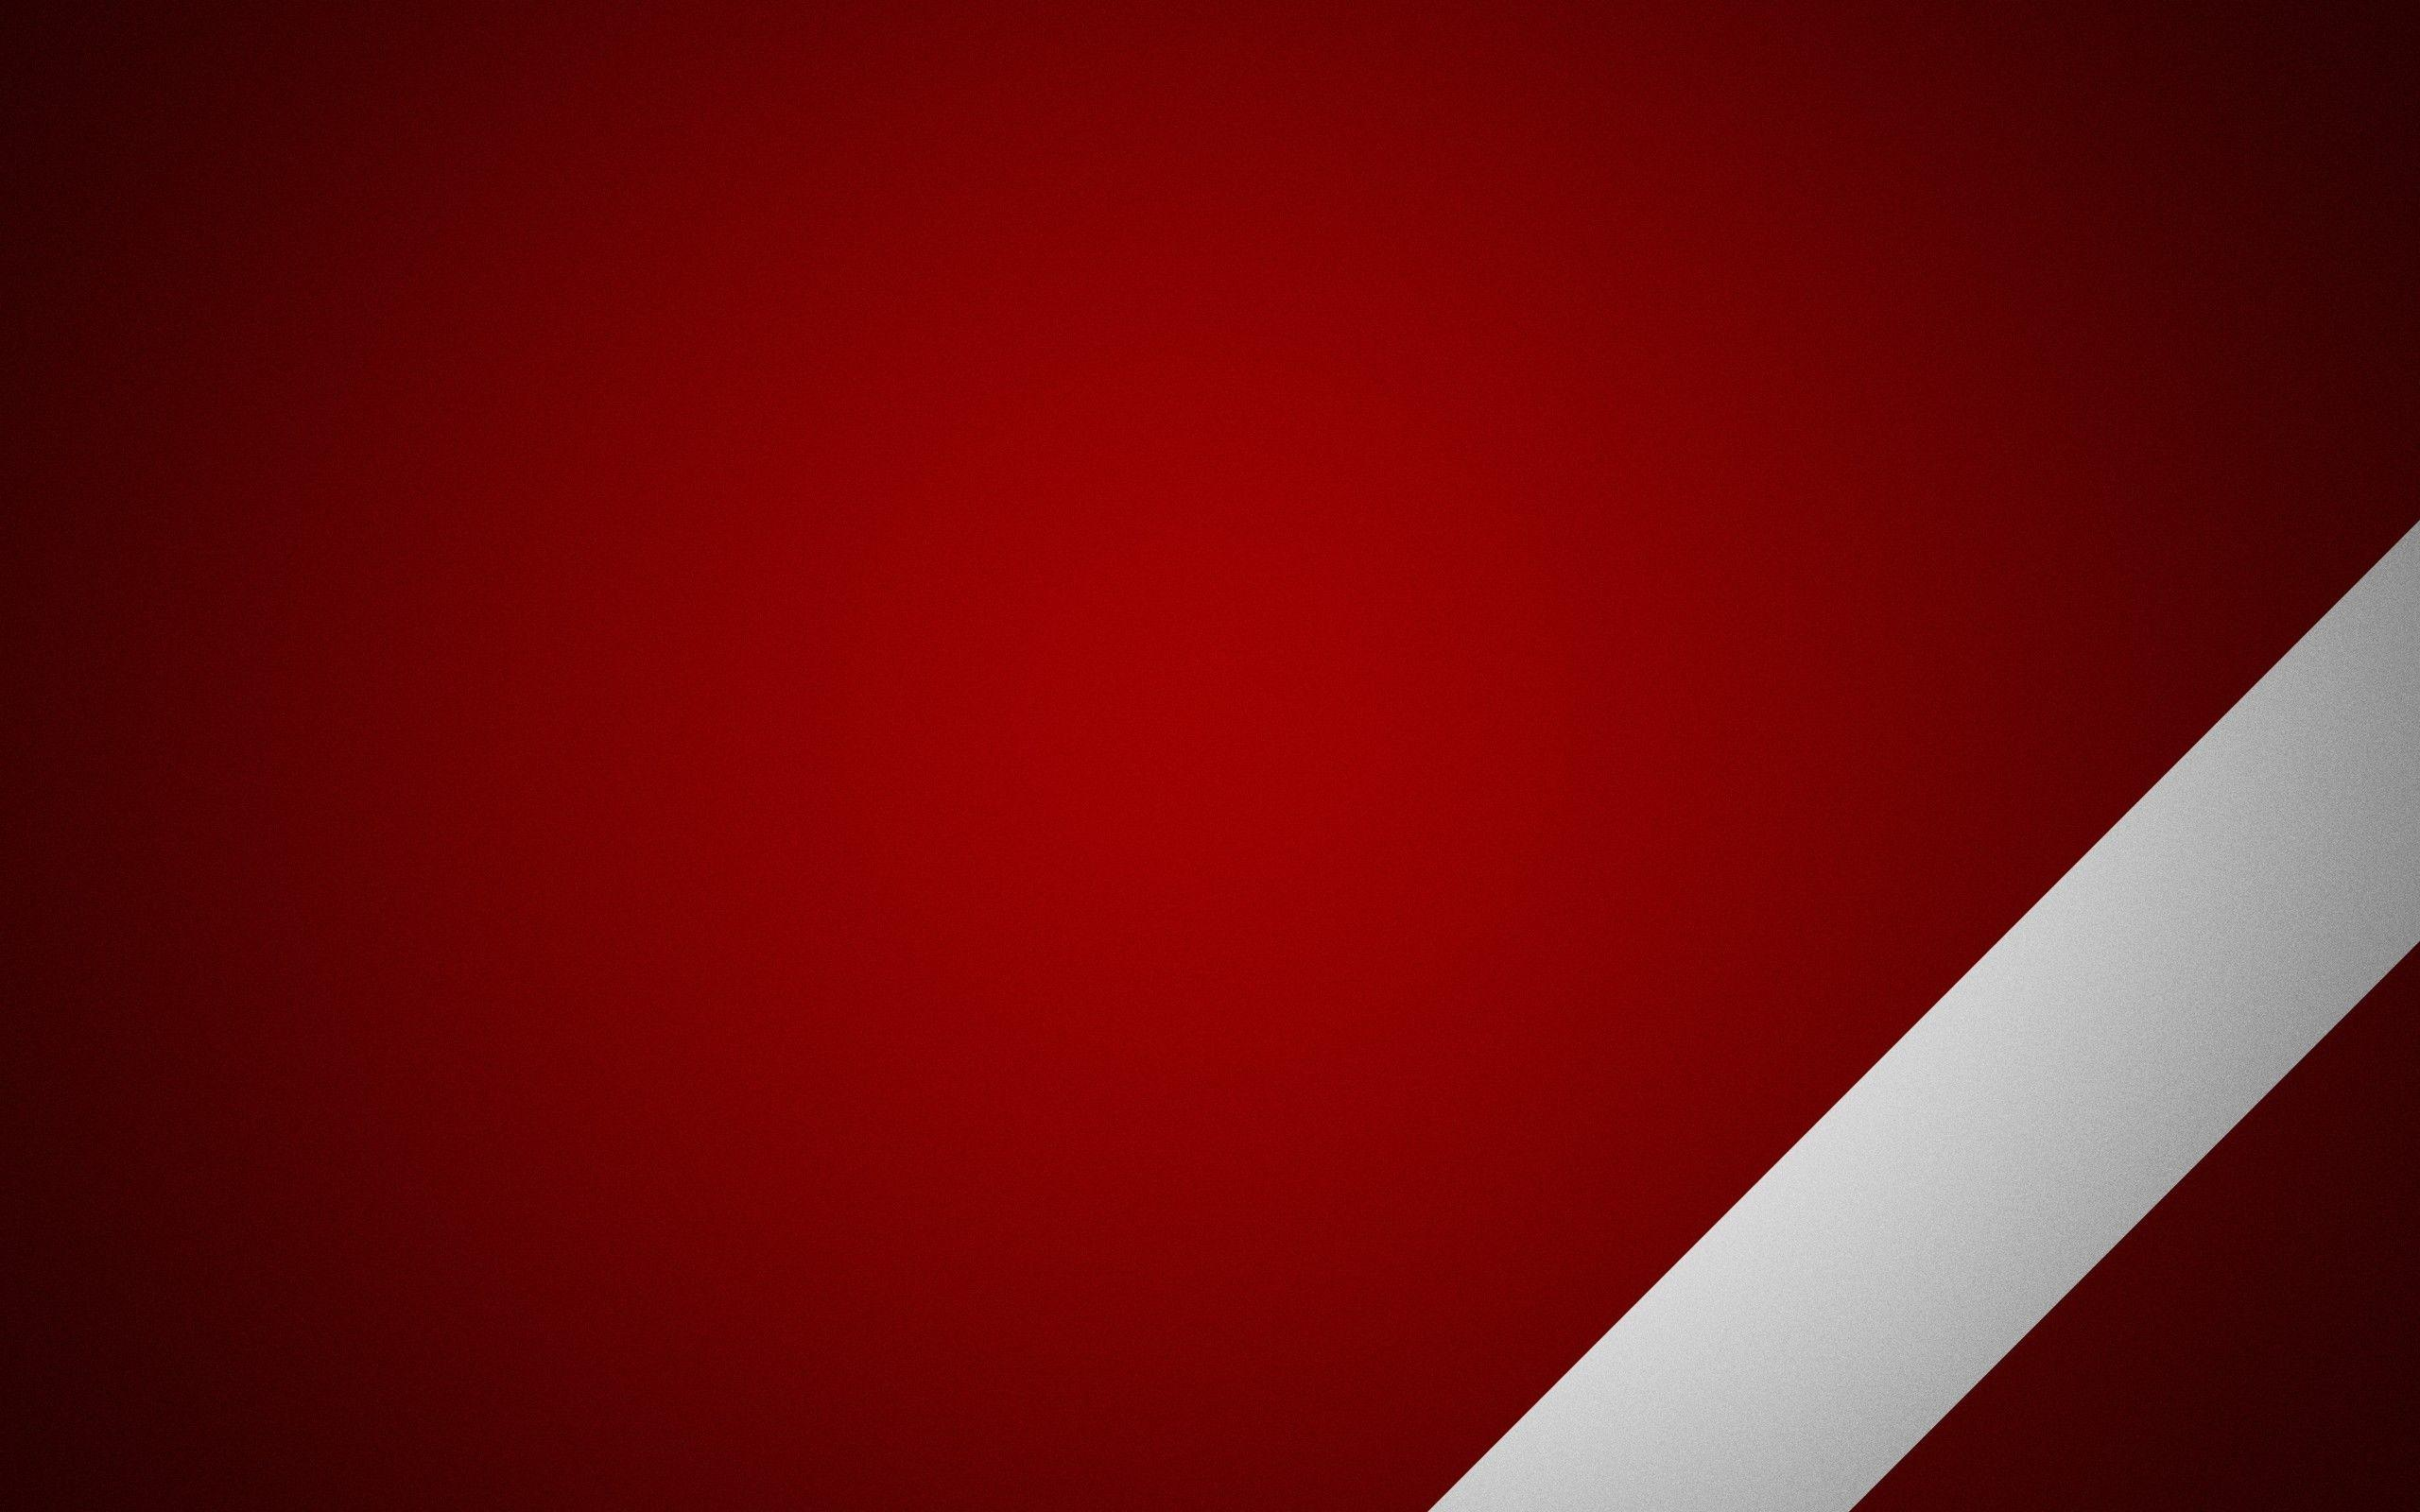 Black And White Striped Wallpaper Red And White Backgrounds Wallpaper Cave